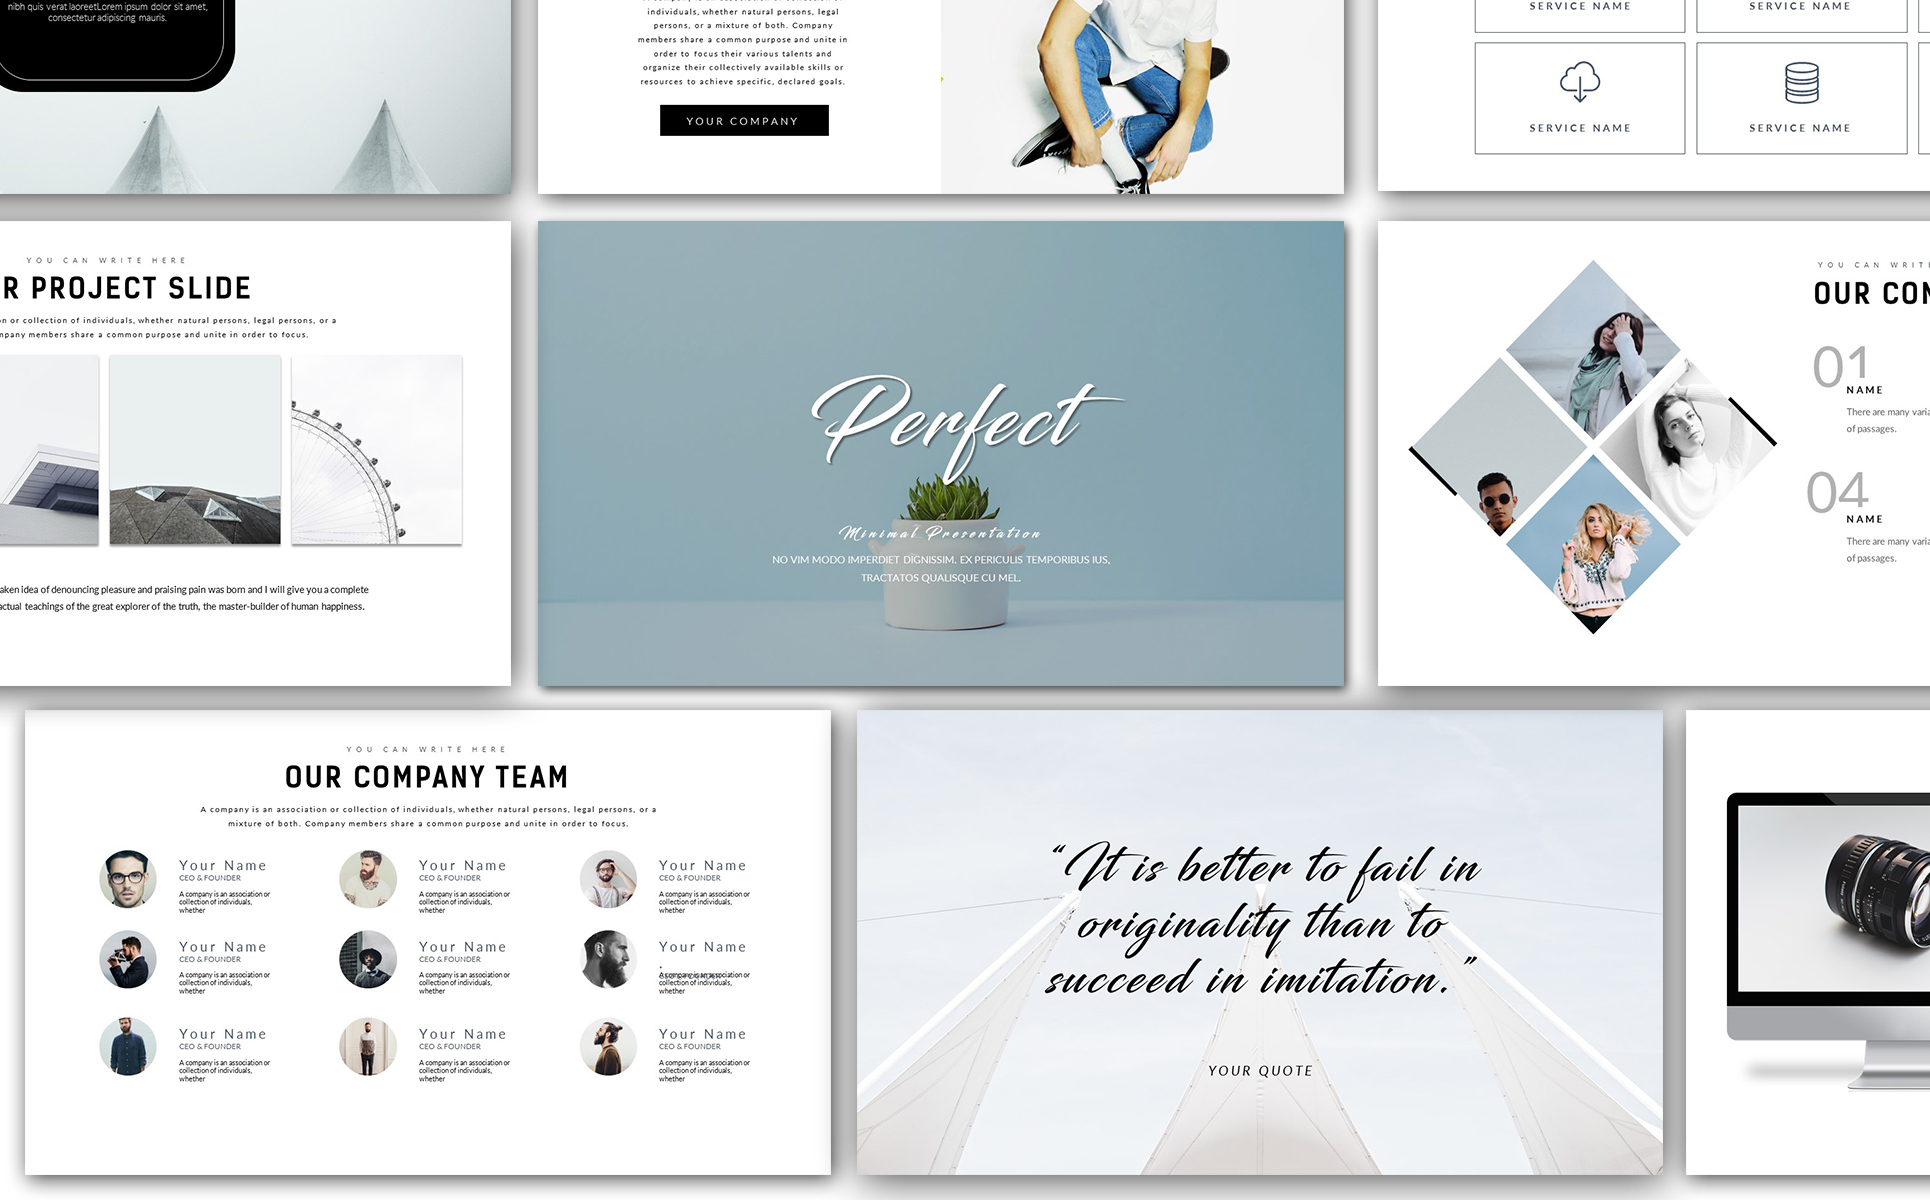 Perfect minimal presentation powerpoint template 67868 for Minimalist powerpoint template free